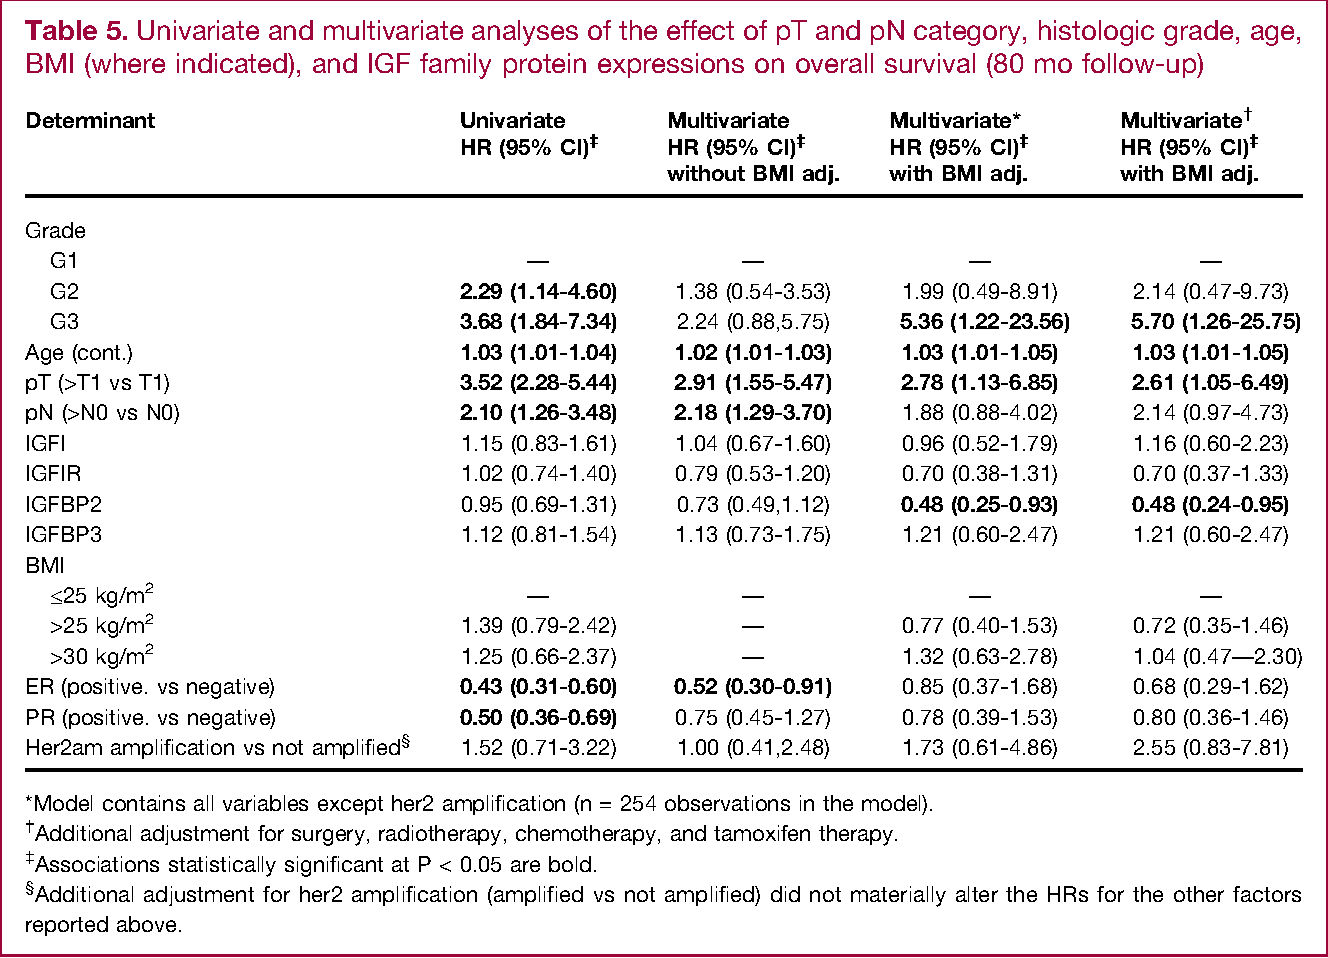 Table 5. Univariate and multivariate analyses of the effect of pT and pN category, histologic grade, age, BMI (where indicated), and IGF family protein expressions on overall survival (80 mo follow-up)